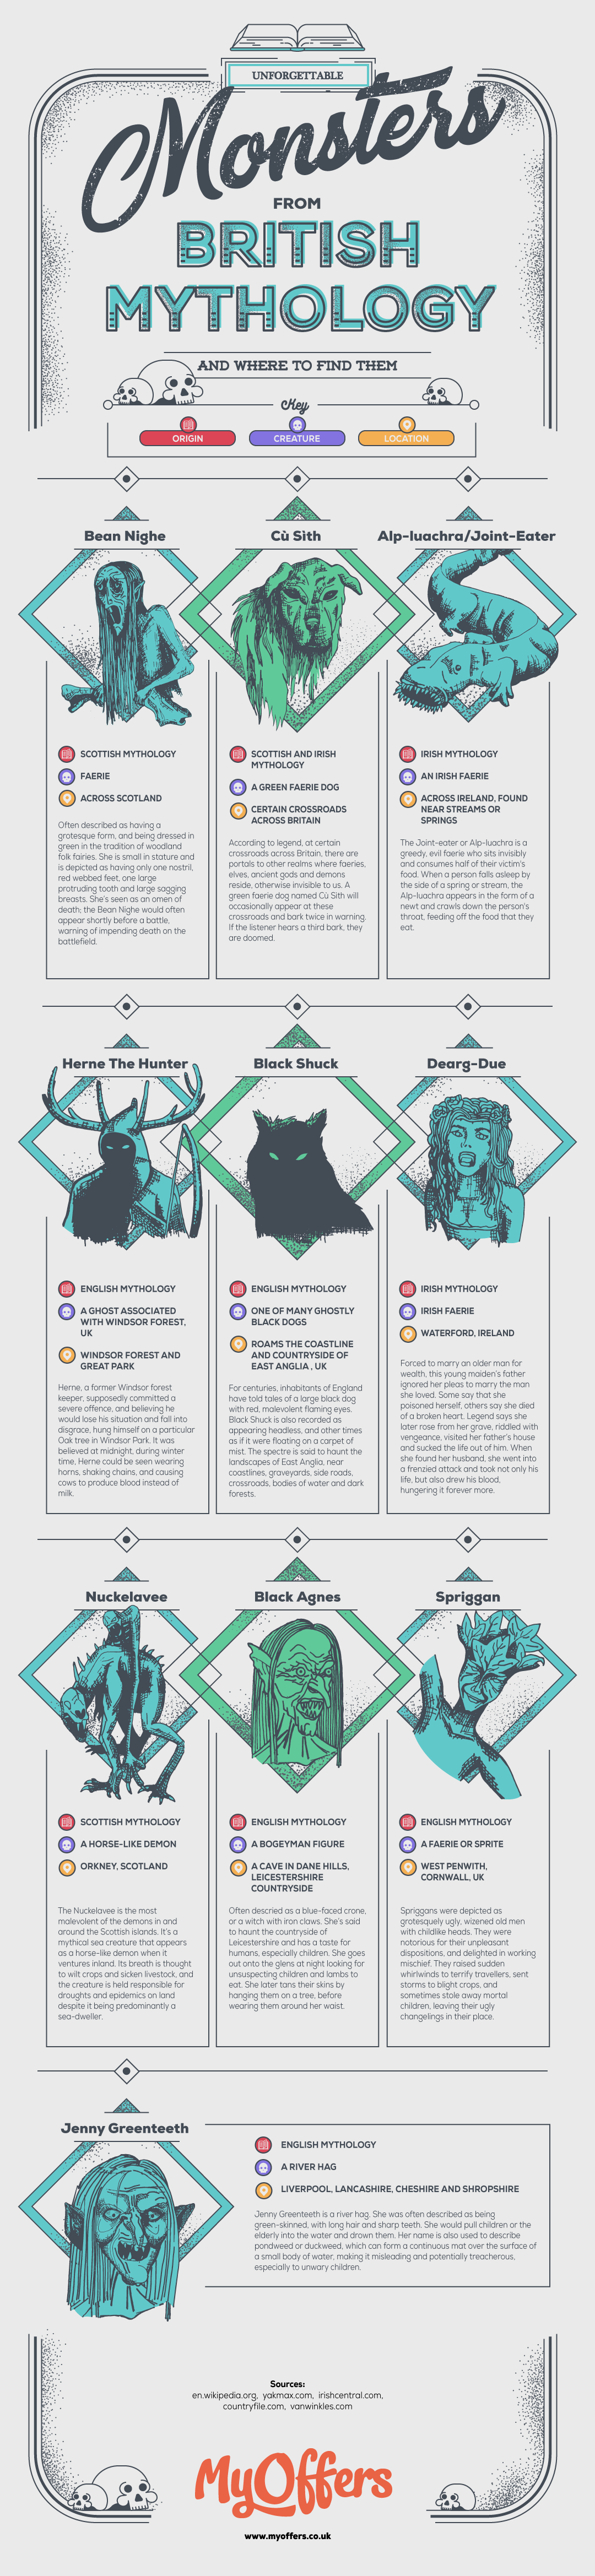 Revisiting Monsterland: Strange Creatures in British Mythology - Infographic